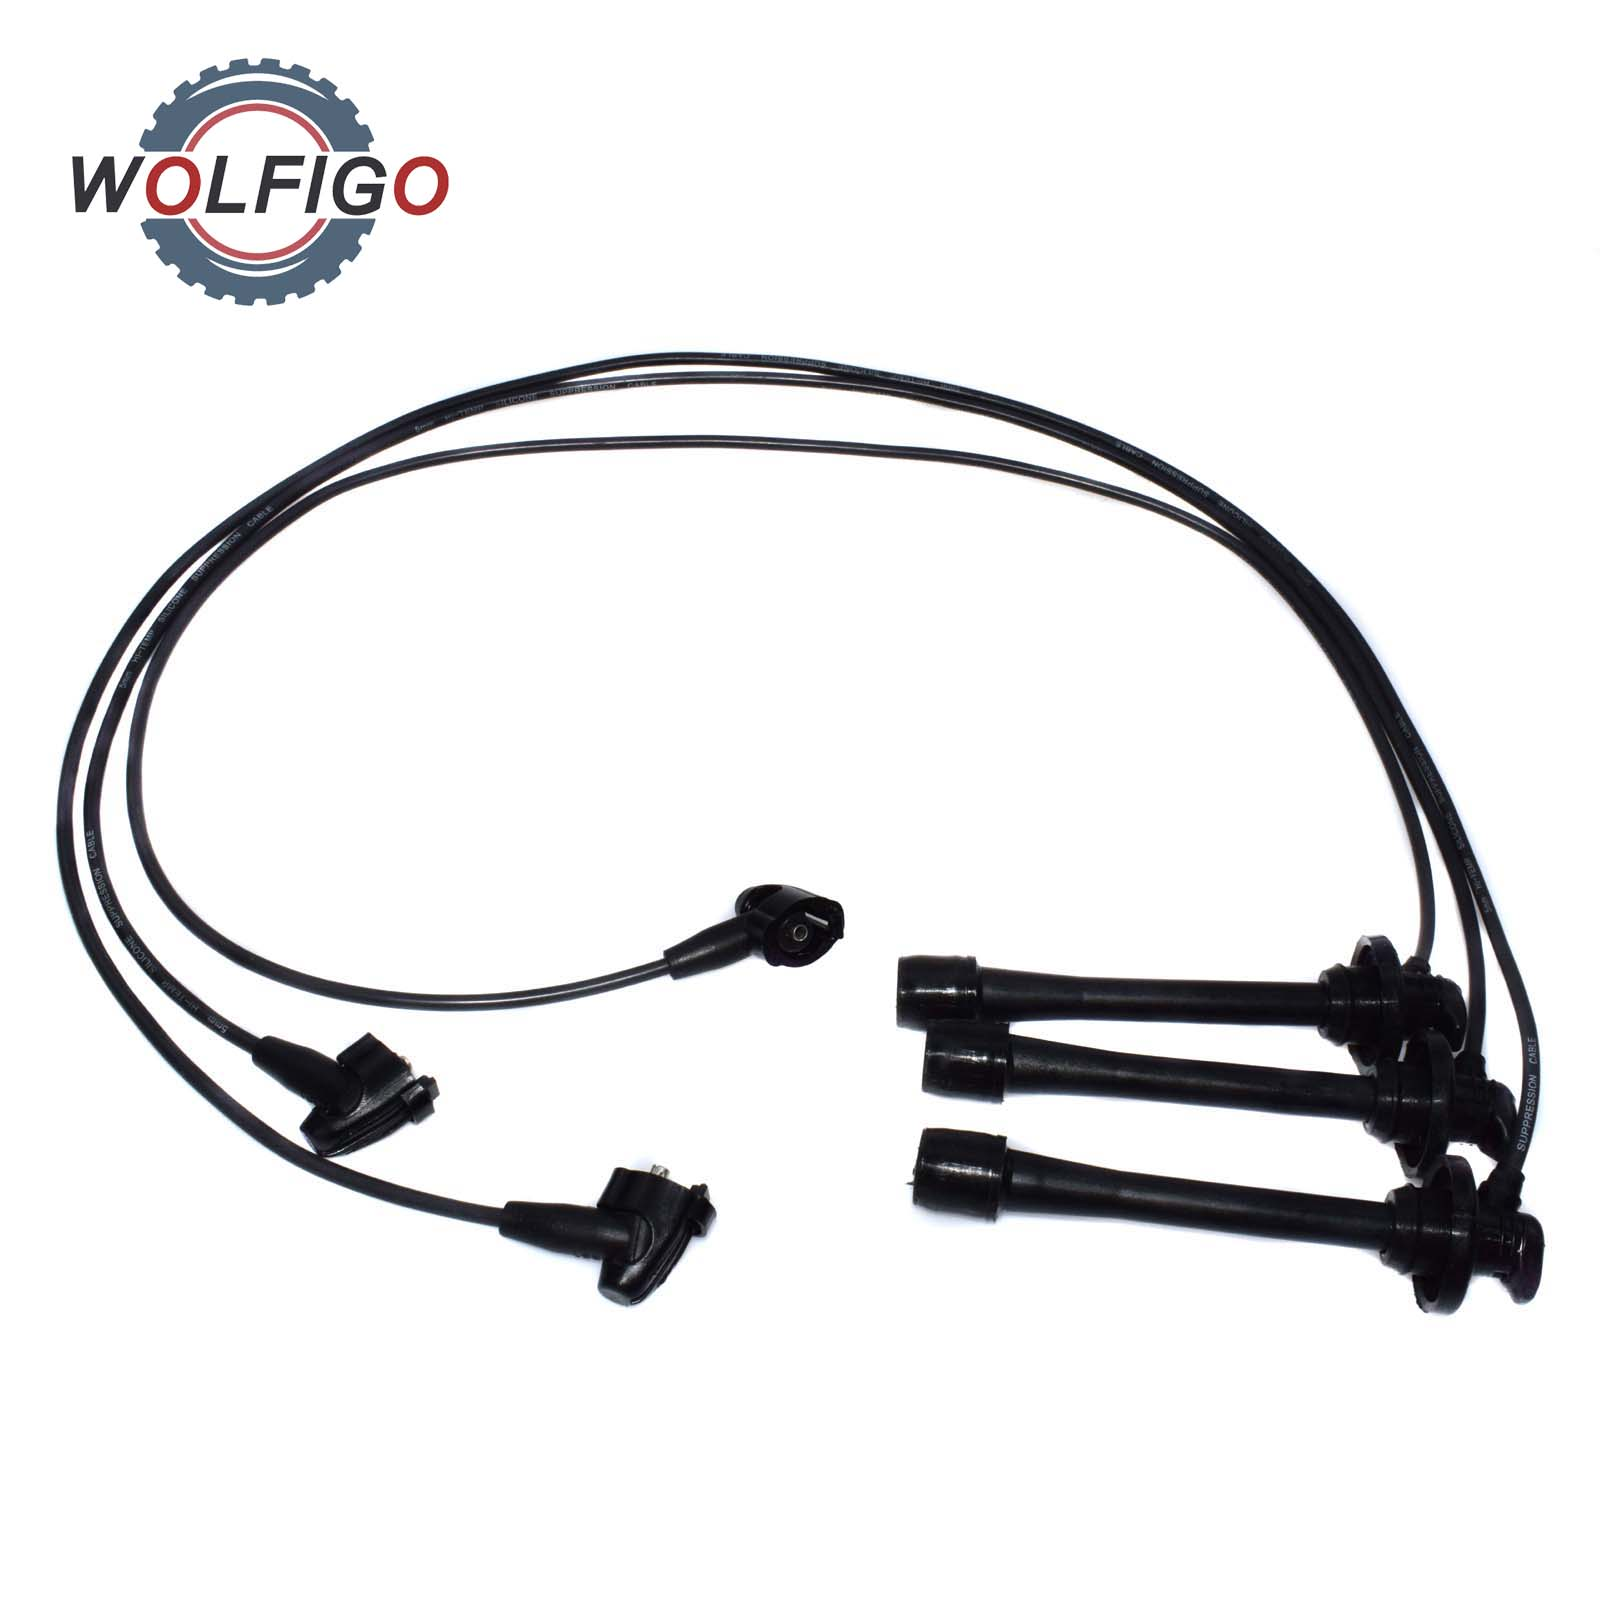 Wolfigo New 3 Pcs Ignition Cable Spark Plug Wire Set